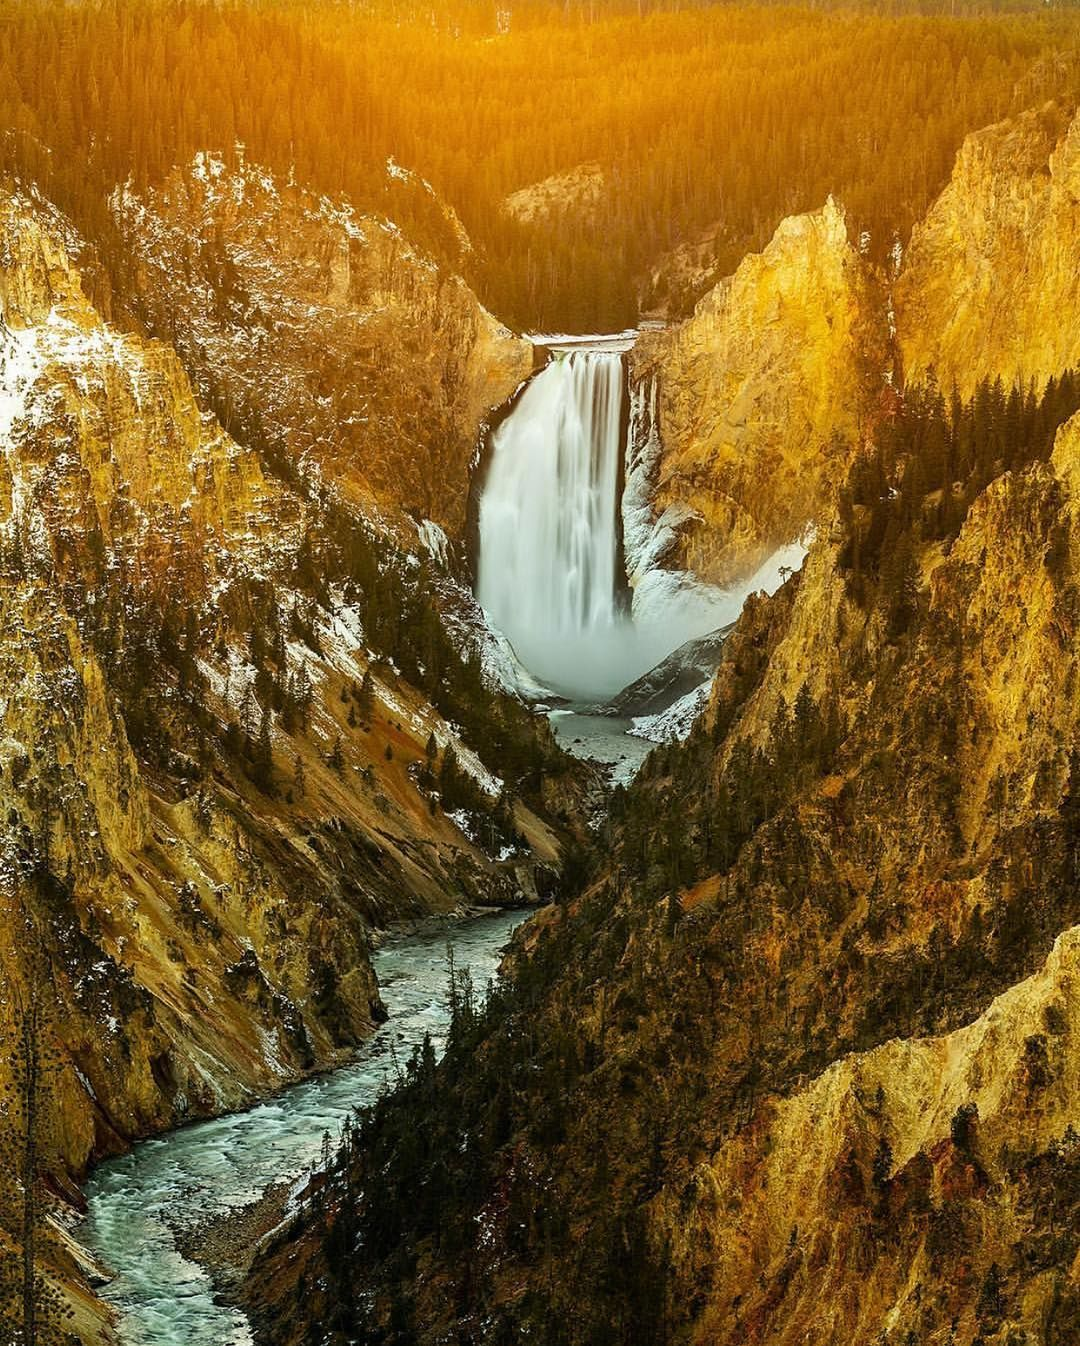 yellowstone national park on instagram u201cthere are only two weekends rh pinterest com